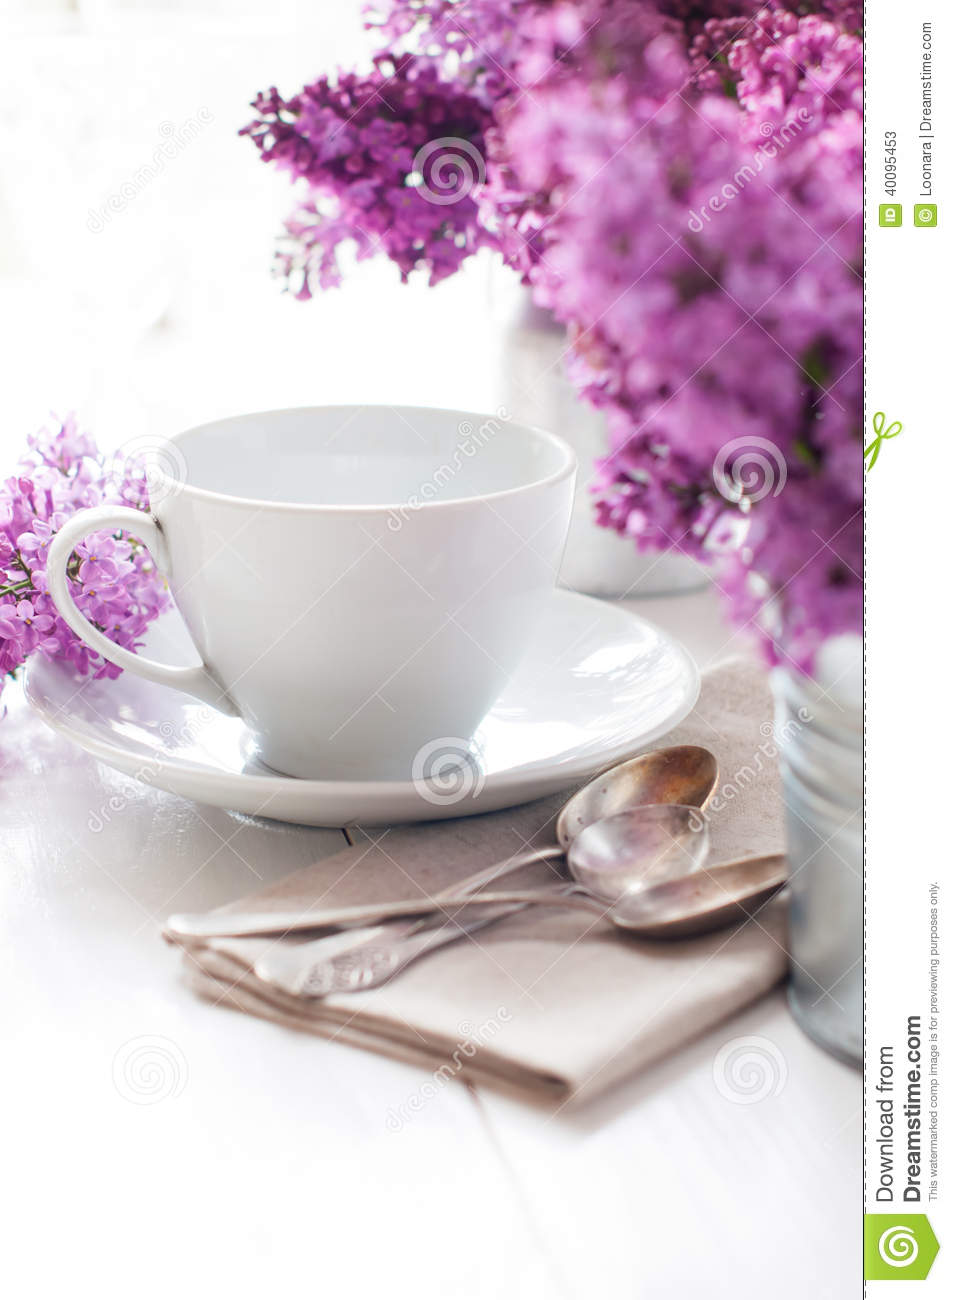 Delicate Morning Tea Table Setting Stock Photo Image  : delicate morning tea table setting lilac flowers vintage spoons utensils white wooden board 40095453 from www.dreamstime.com size 953 x 1300 jpeg 102kB